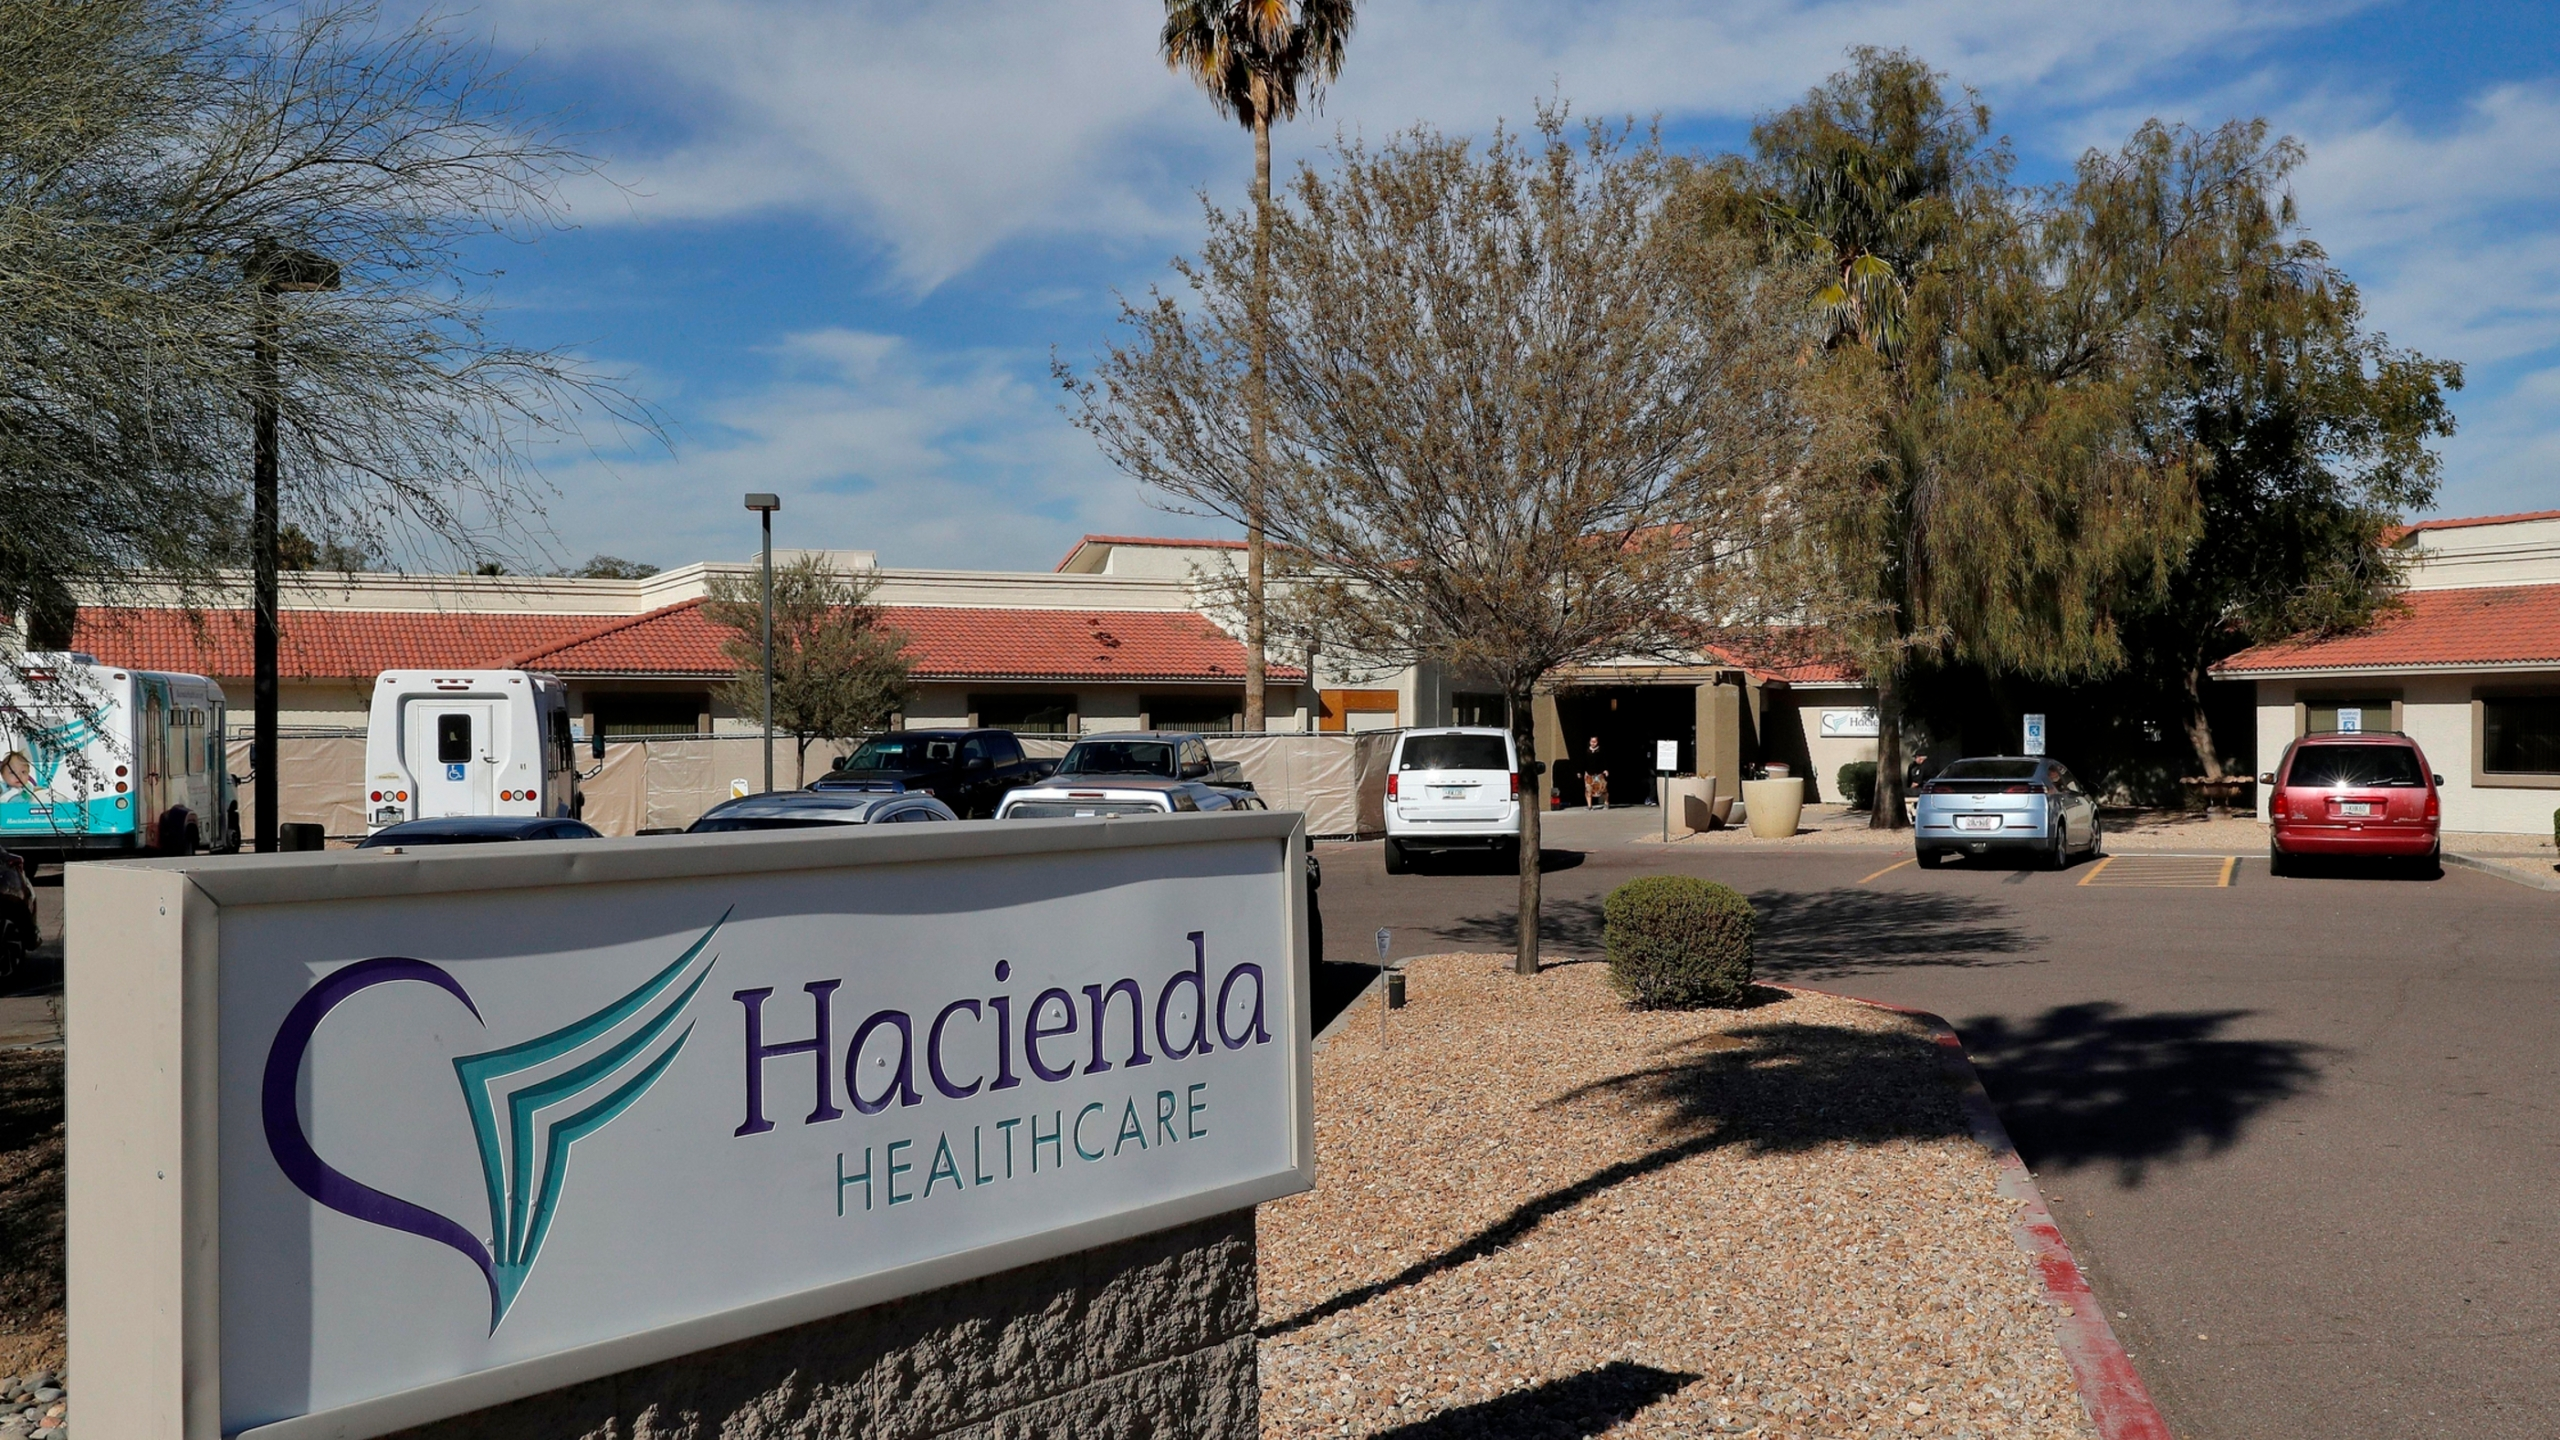 The Hacienda HealthCare facility in Phoenix, where an incapacitated woman was raped and later gave birth, is seen on Jan. 25, 2019.(Matt York / Associated Press)